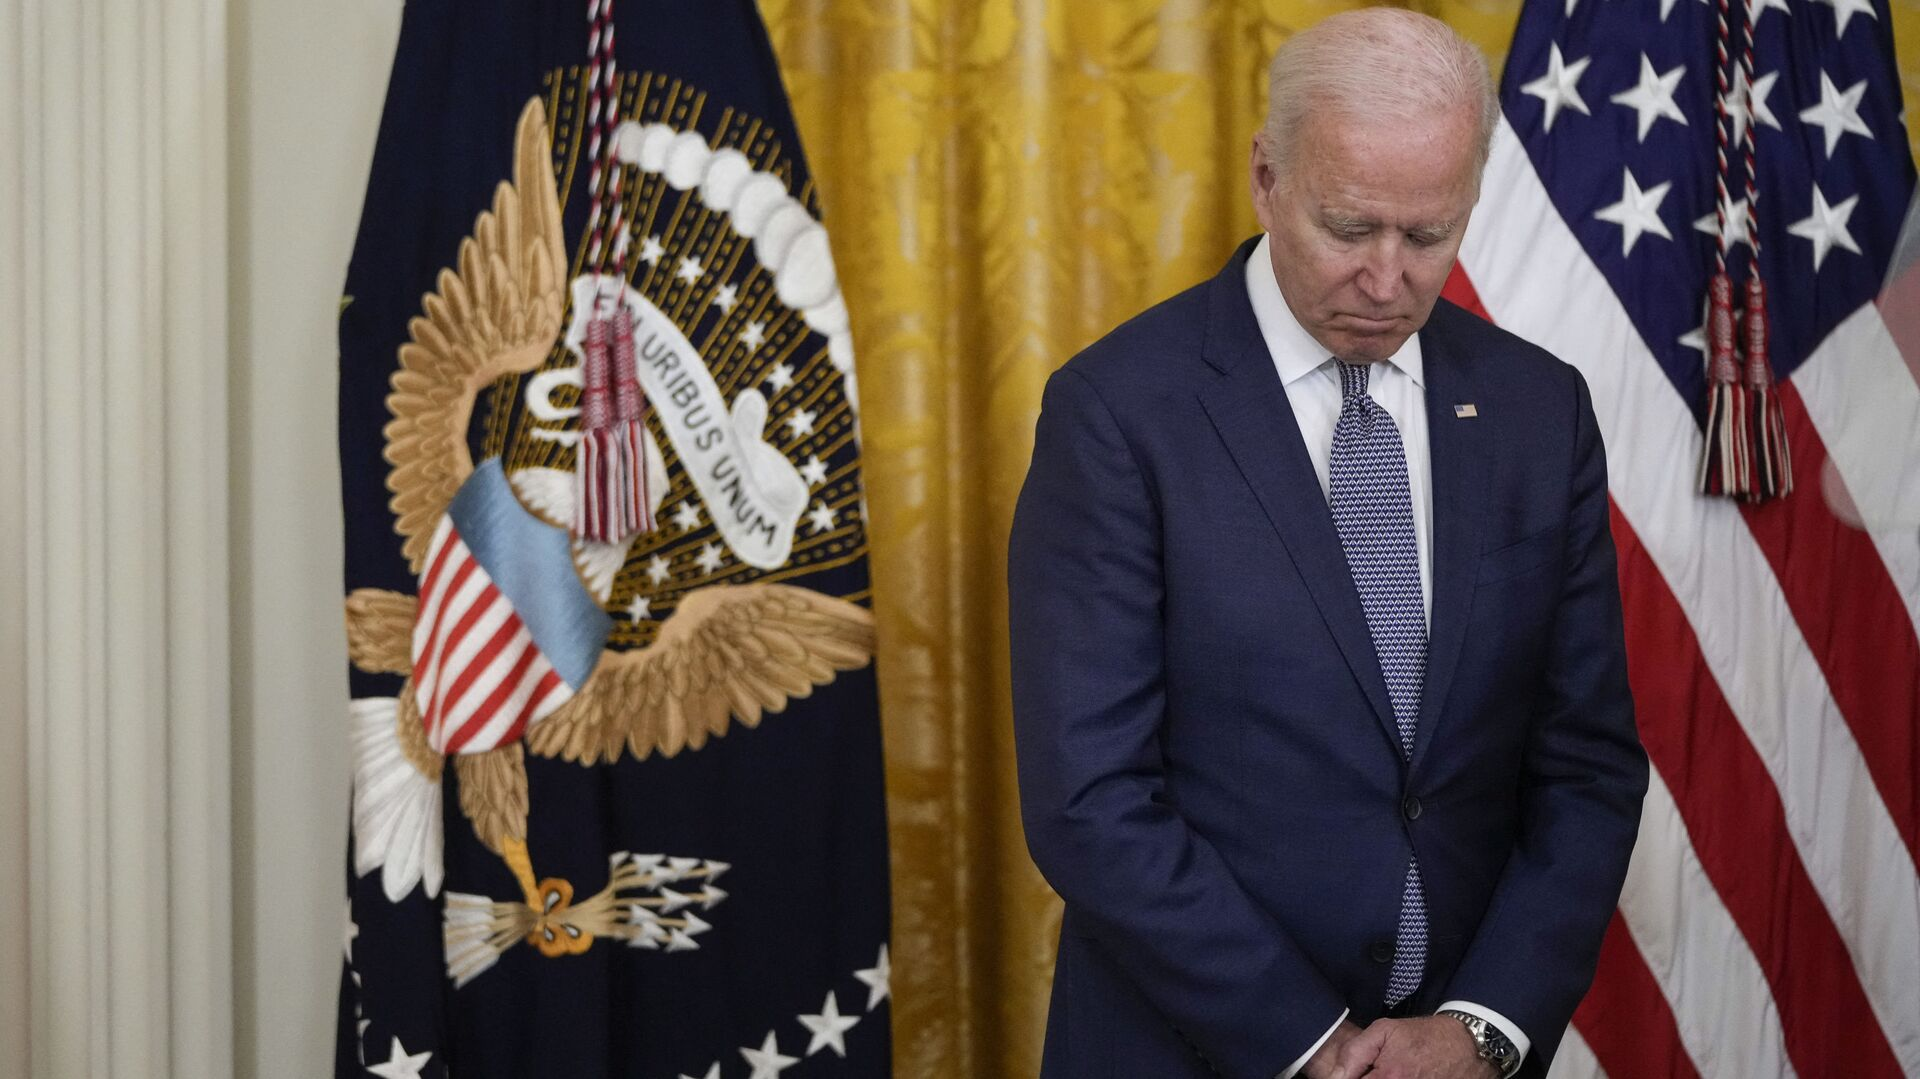 Poll: Biden's Approval Rating Down to 50%, Lowest to Date - Sputnik International, 1920, 24.07.2021